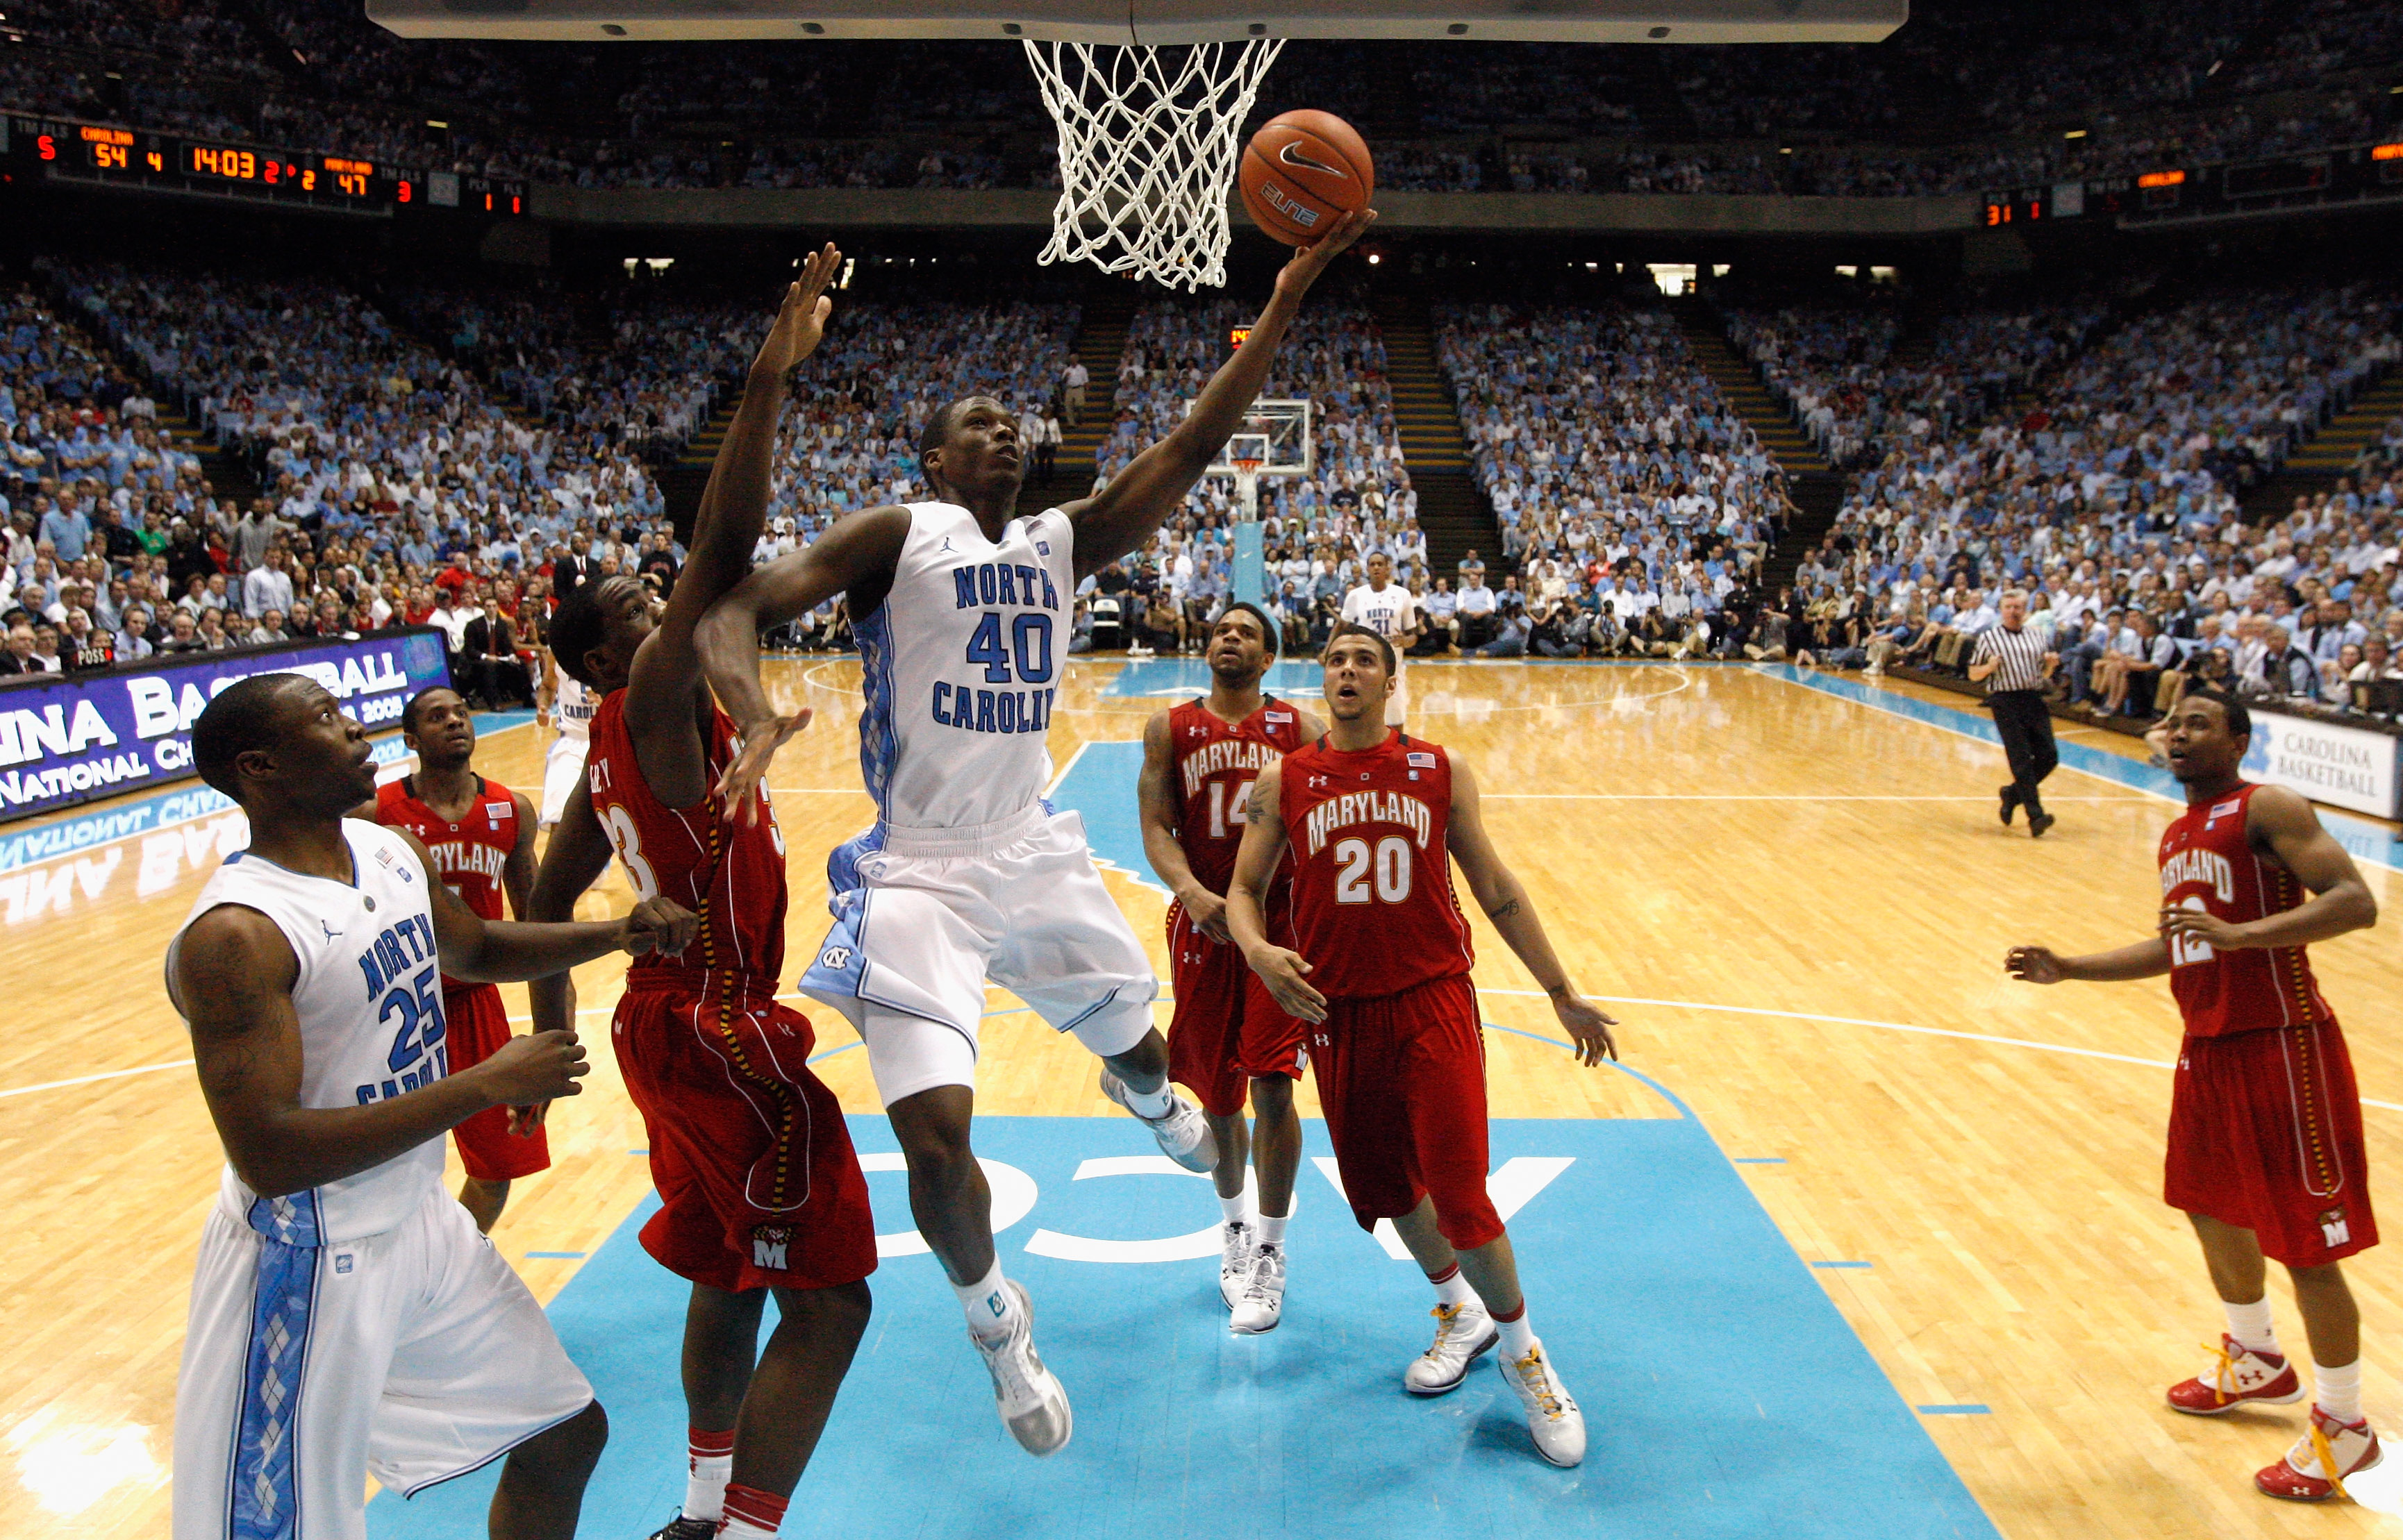 CHAPEL HILL, NC - FEBRUARY 27:  Harrison Barnes #40 of the North Carolina Tar Heels drives to the basket on Dino Gregory #33 of the Maryland Terrapins during their game at the Dean E. Smith Center on February 27, 2011 in Chapel Hill, North Carolina.  (Pho